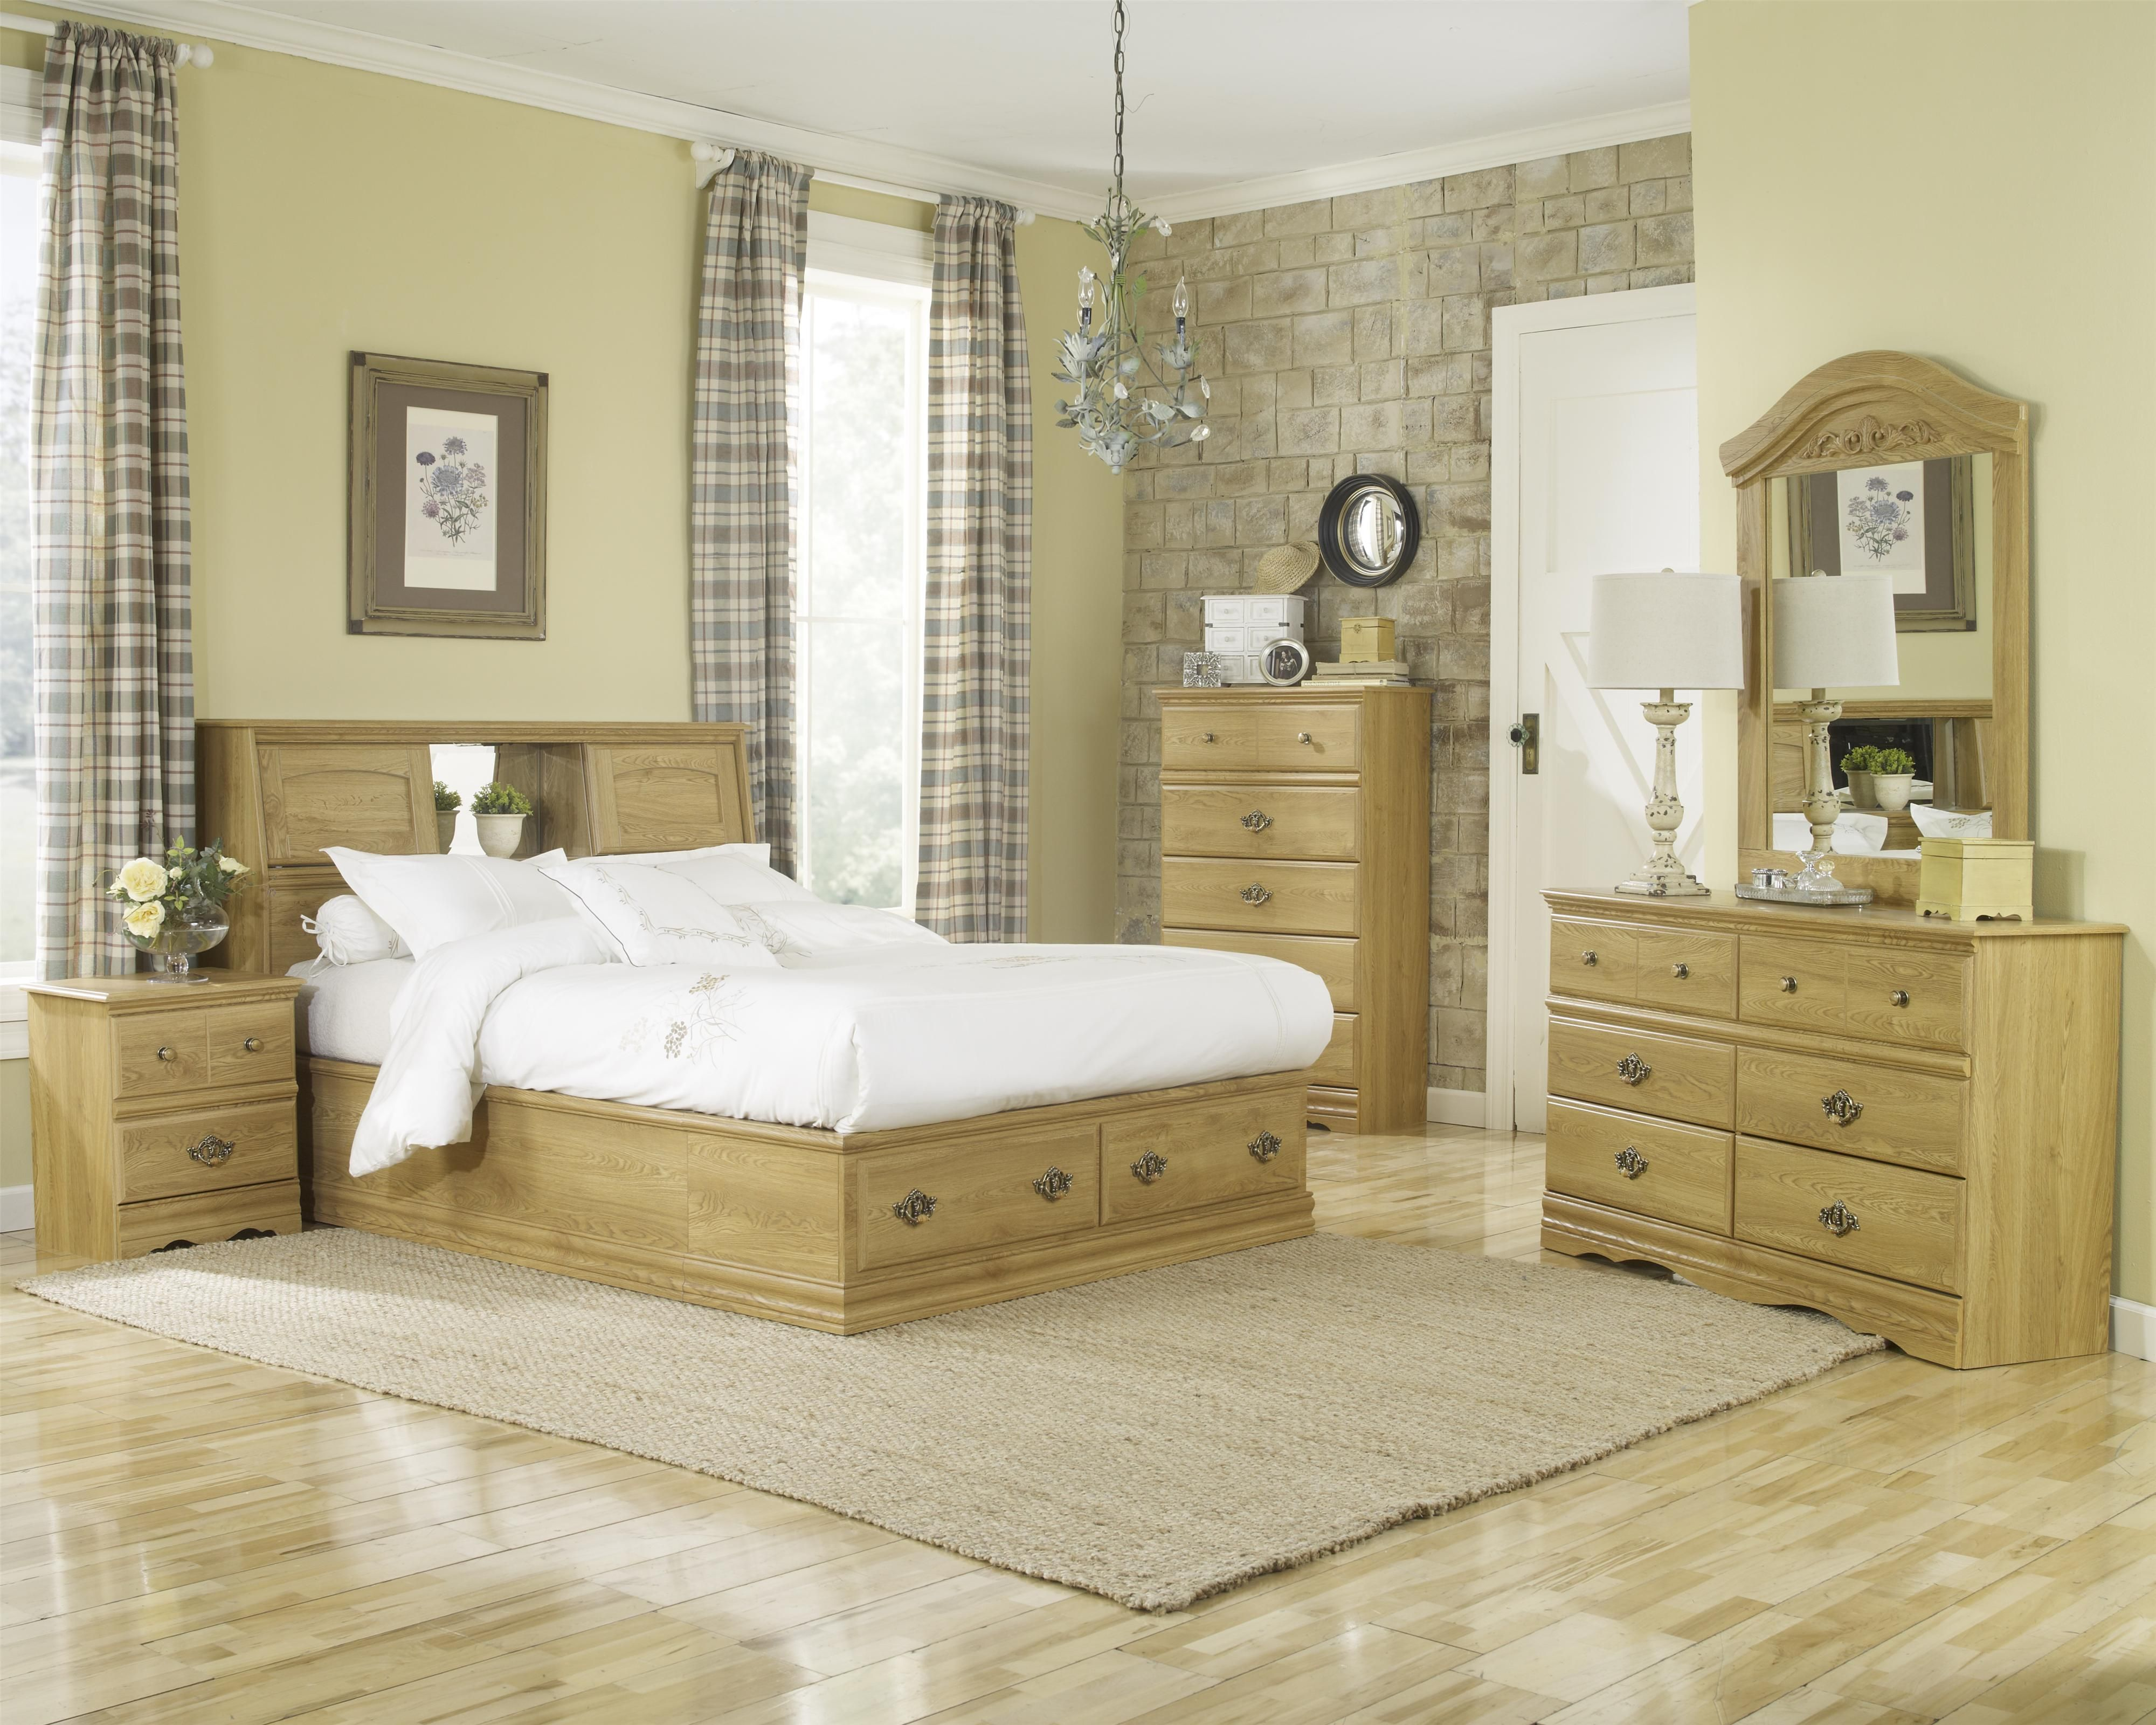 Oak Creek Oak By Lang A1 Furniture Bedding Lang Oak Creek